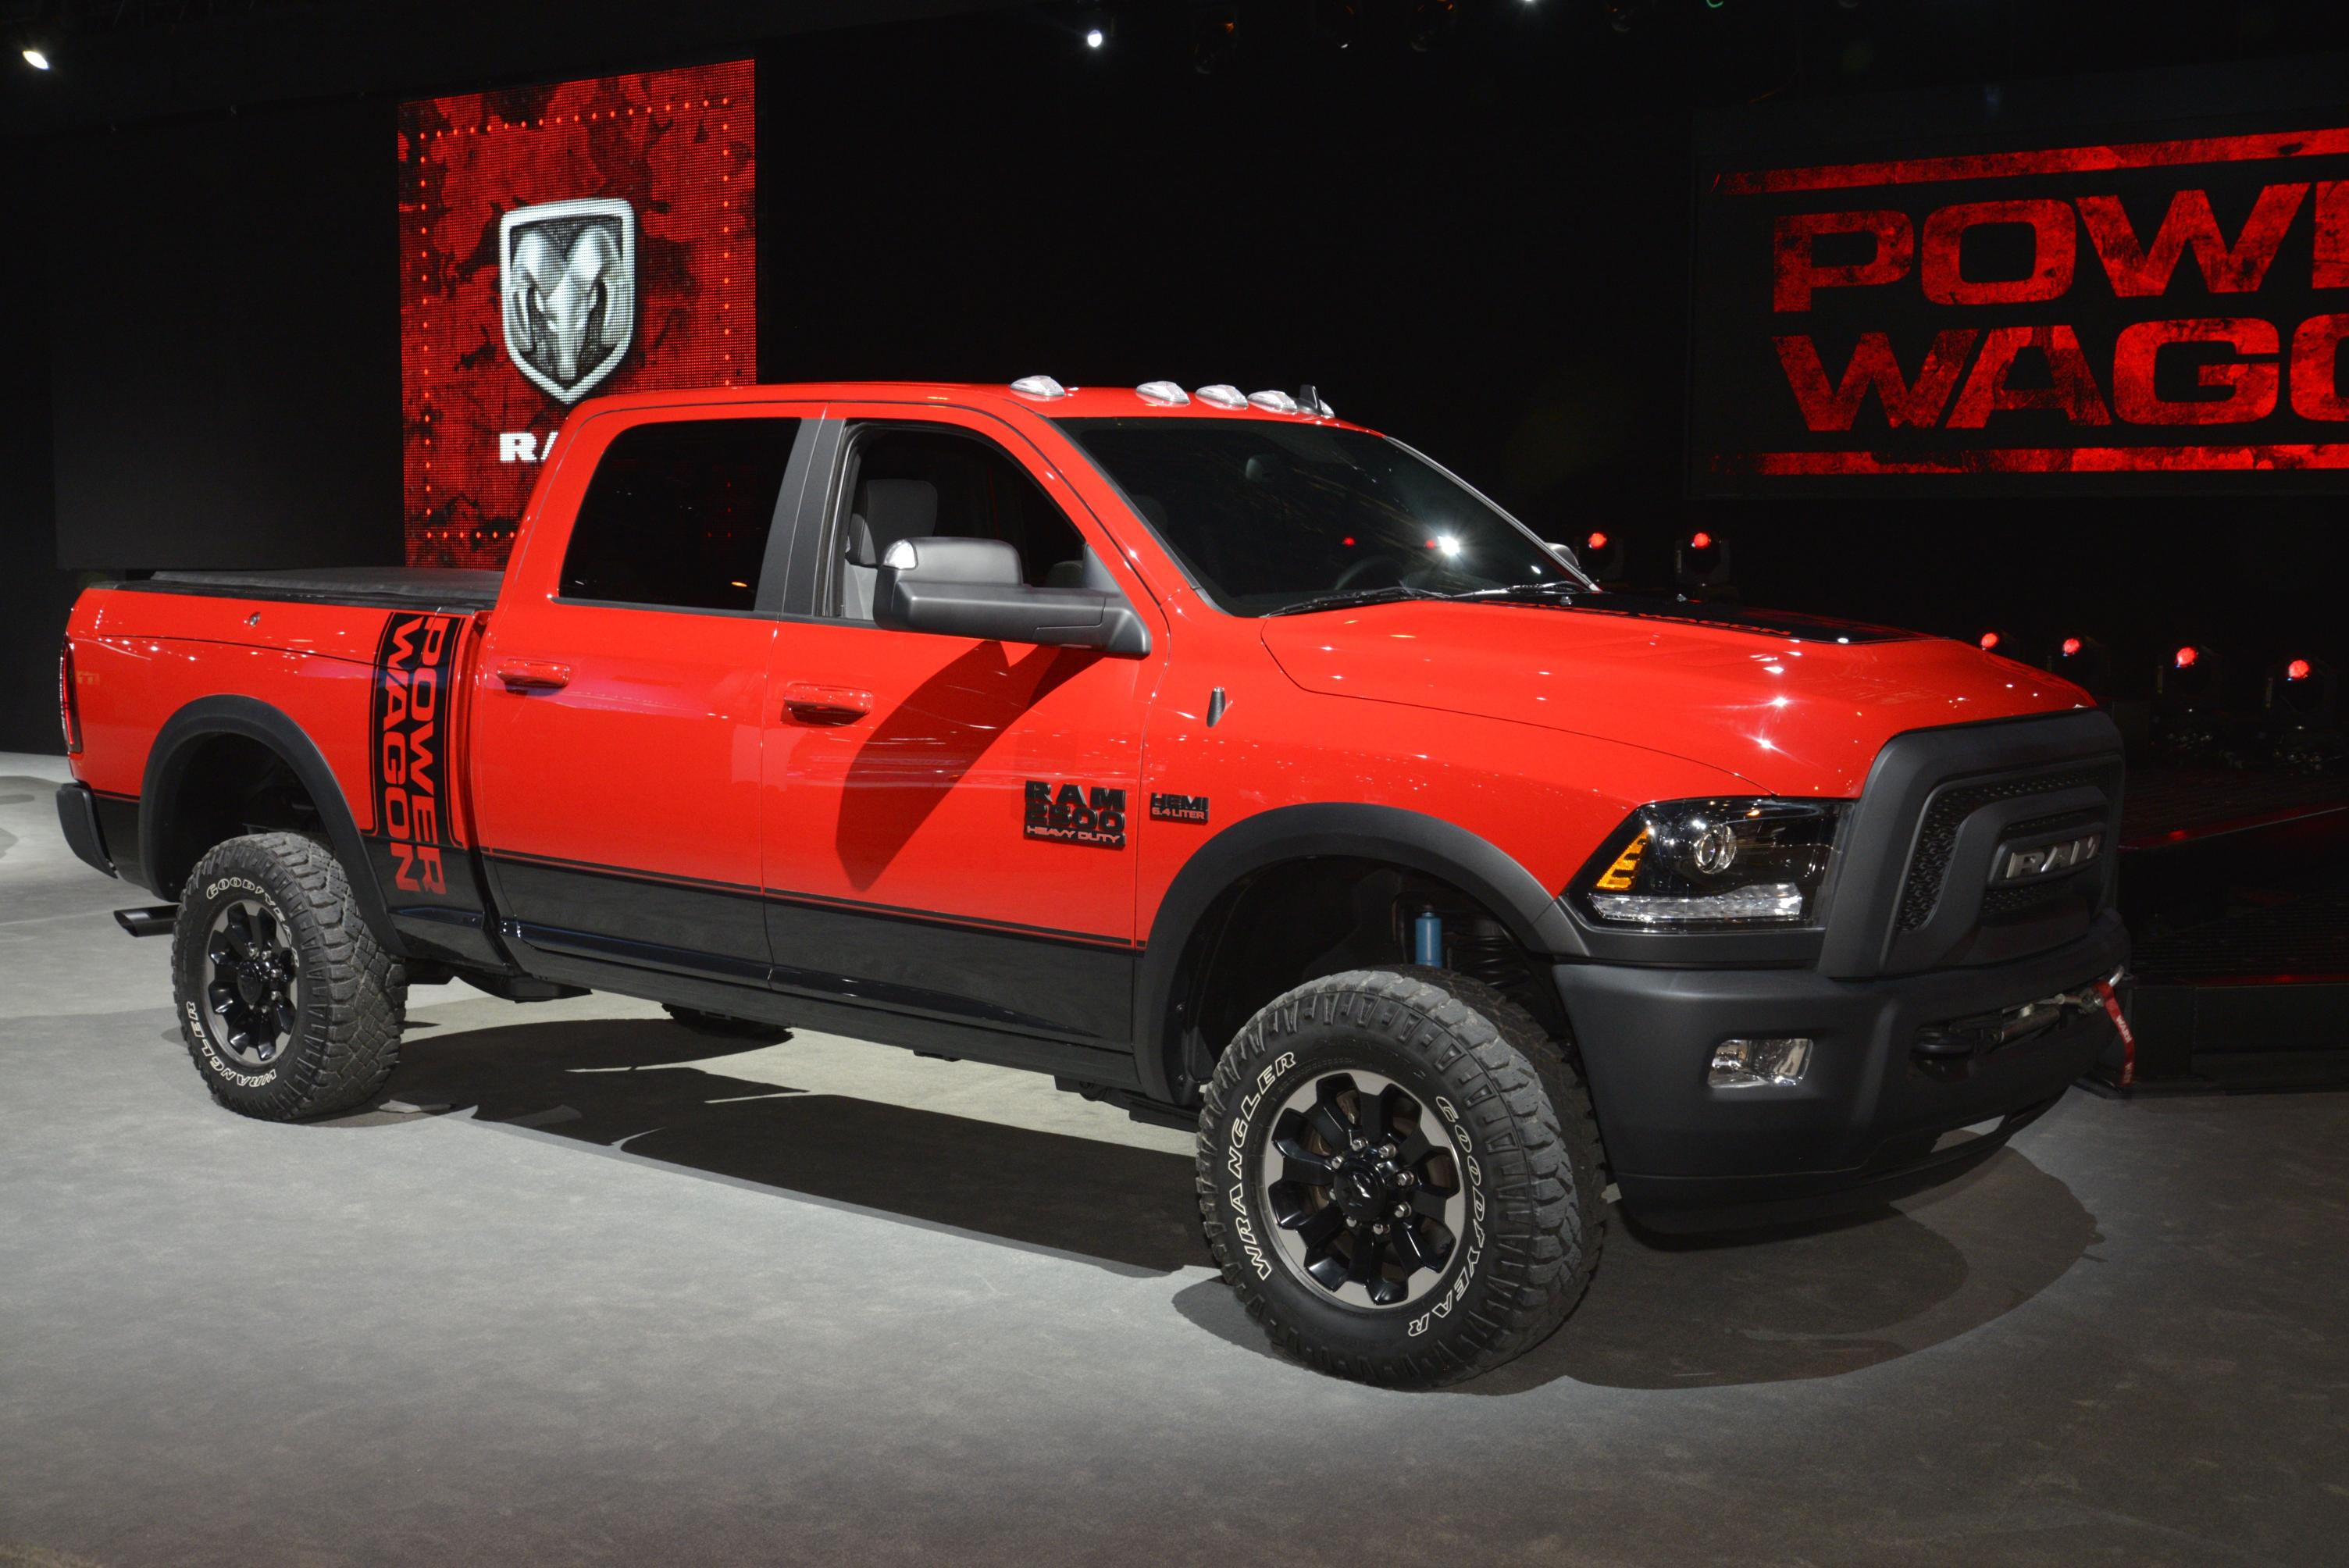 2017 Ram 2500 Power Wagon Demos Its Macho Suspension Articulation in Chicago - autoevolution